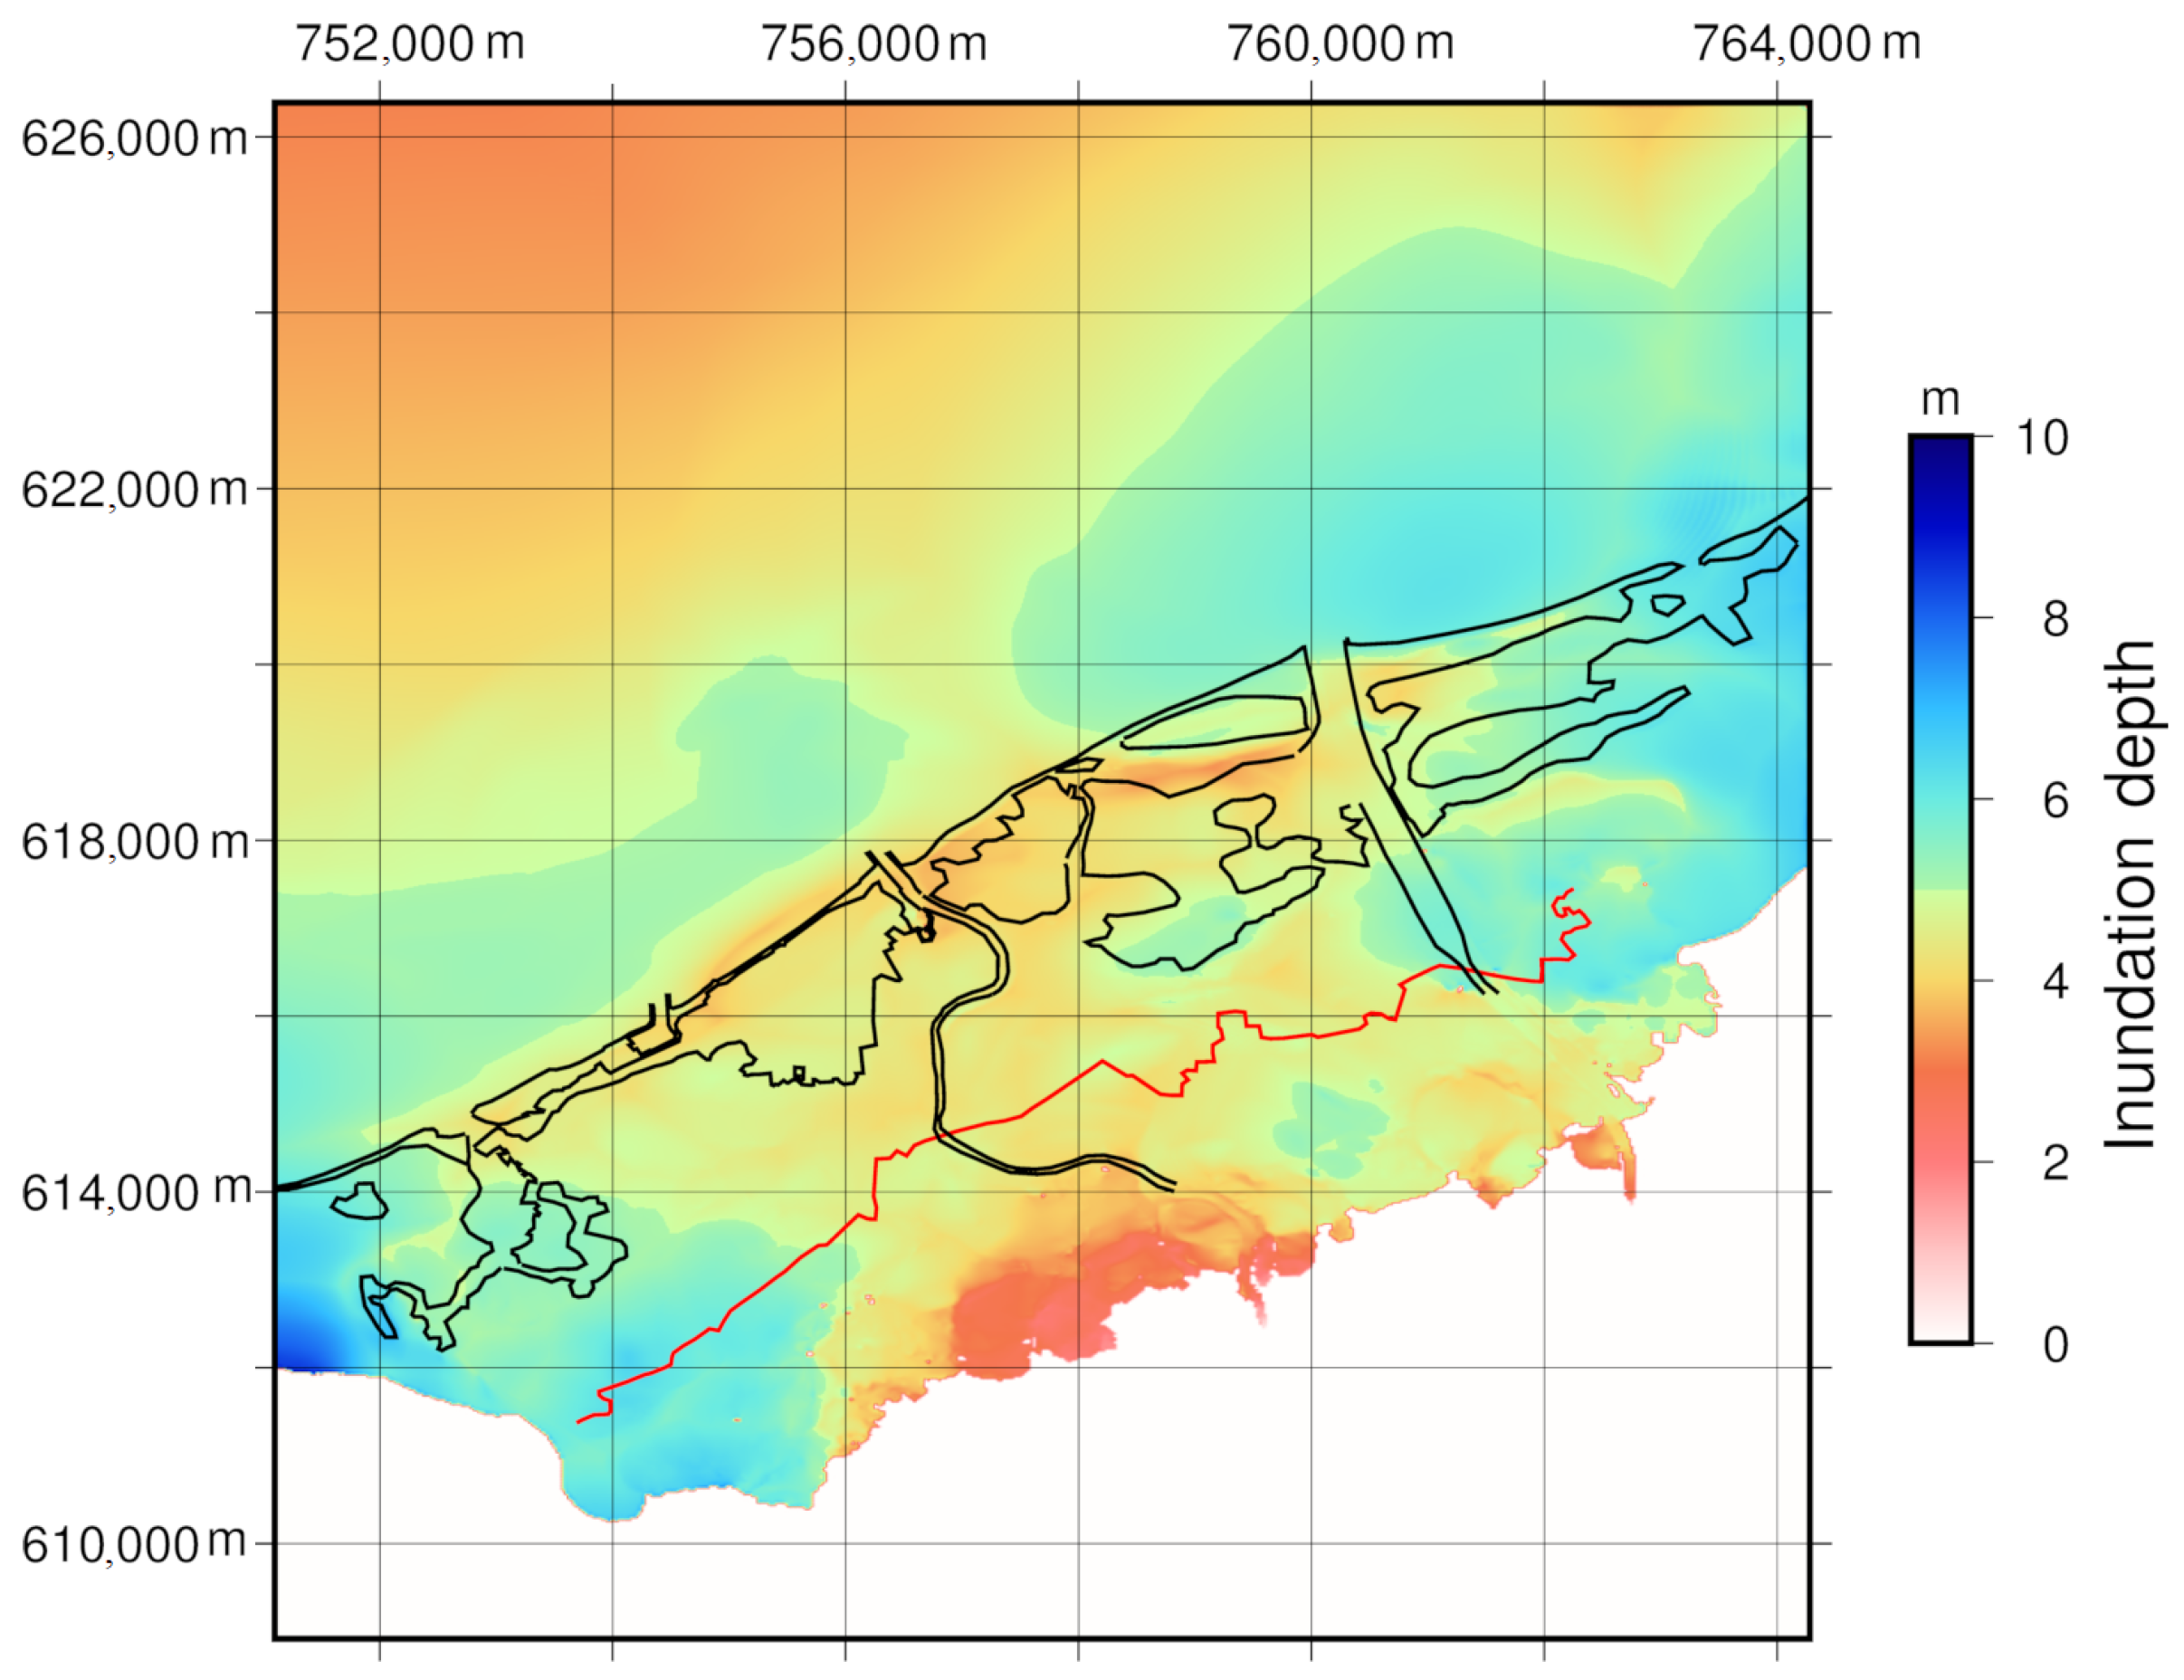 Geosciences Free Full Text Numerical Simulation Of Morphological Changes Due To The 2004 Tsunami Wave Around Banda Aceh Indonesia